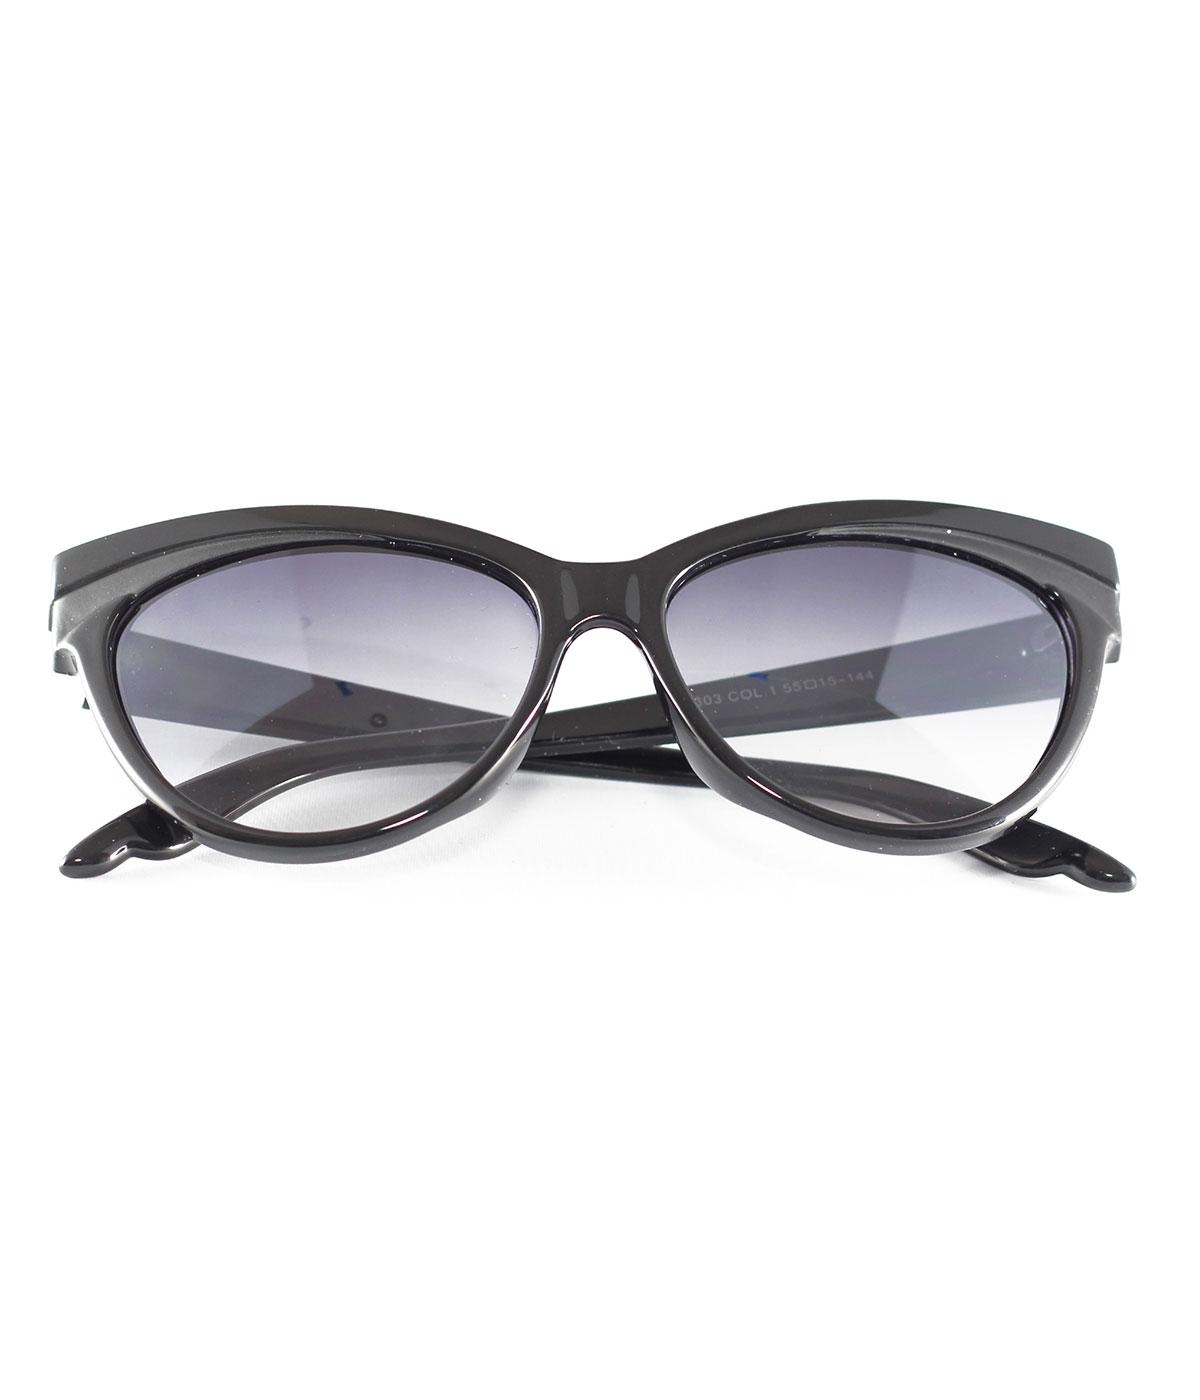 Judy COLLECTIF Vintage 50s Catseye Sunglasses